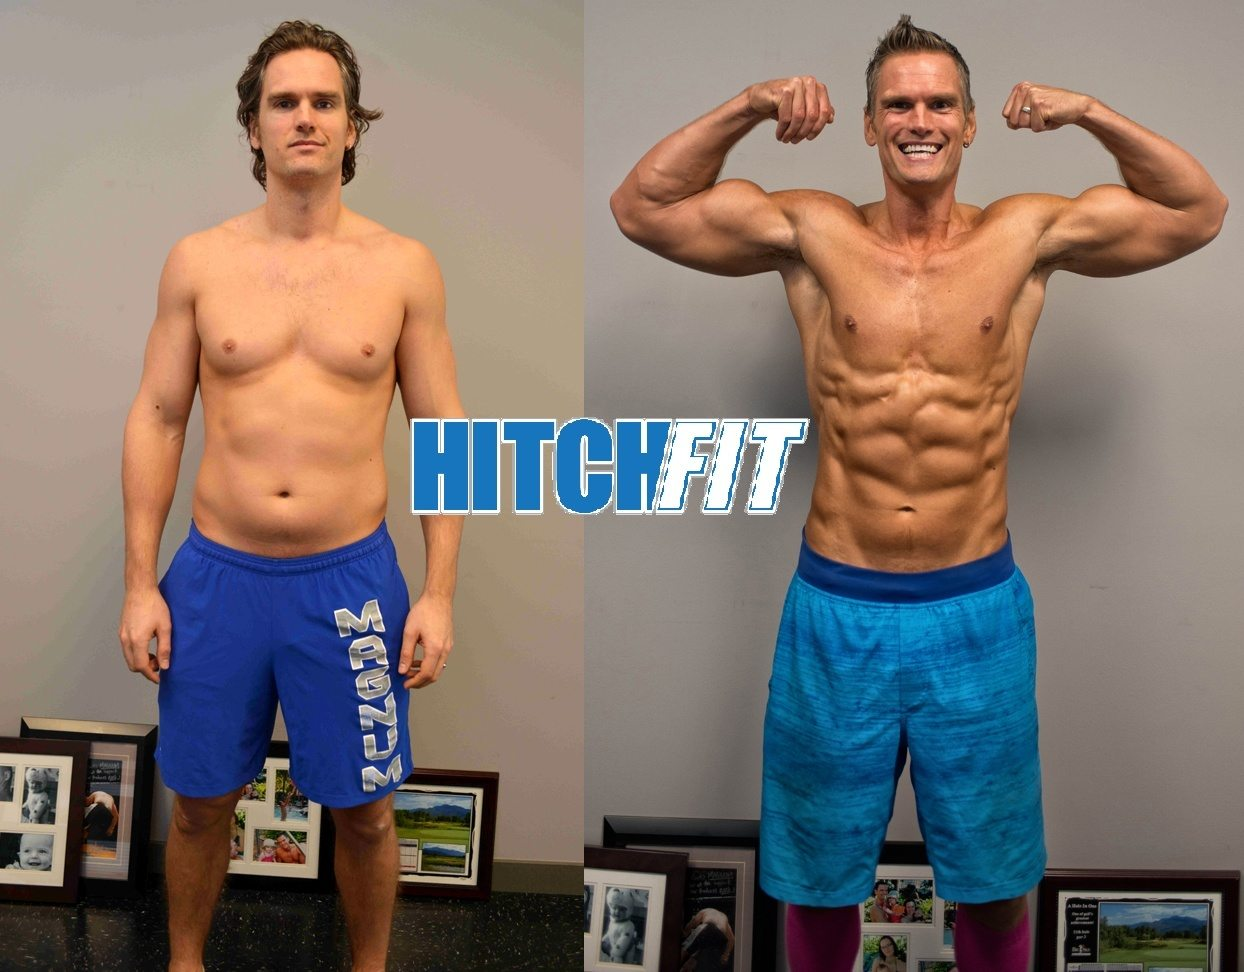 This Mans Astonishing Physical Transformation After Kicking His Drug Habit Has Been Seen by 3 Million People This Mans Astonishing Physical Transformation After Kicking His Drug Habit Has Been Seen by 3 Million People new pictures